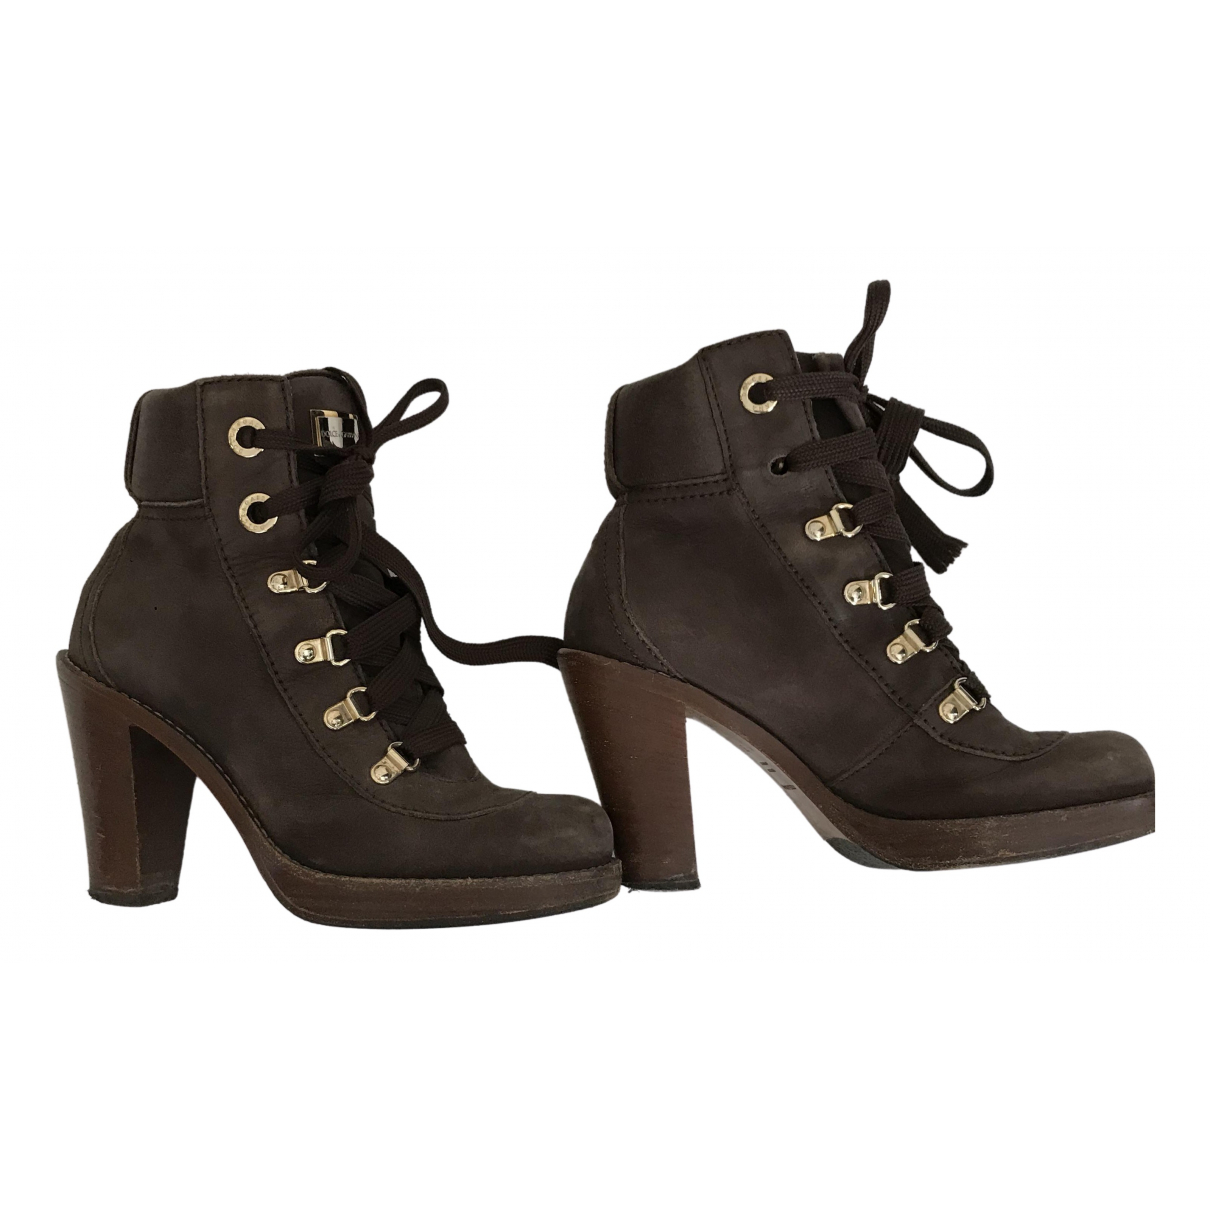 Dolce & Gabbana \N Brown Suede Ankle boots for Women 35 EU